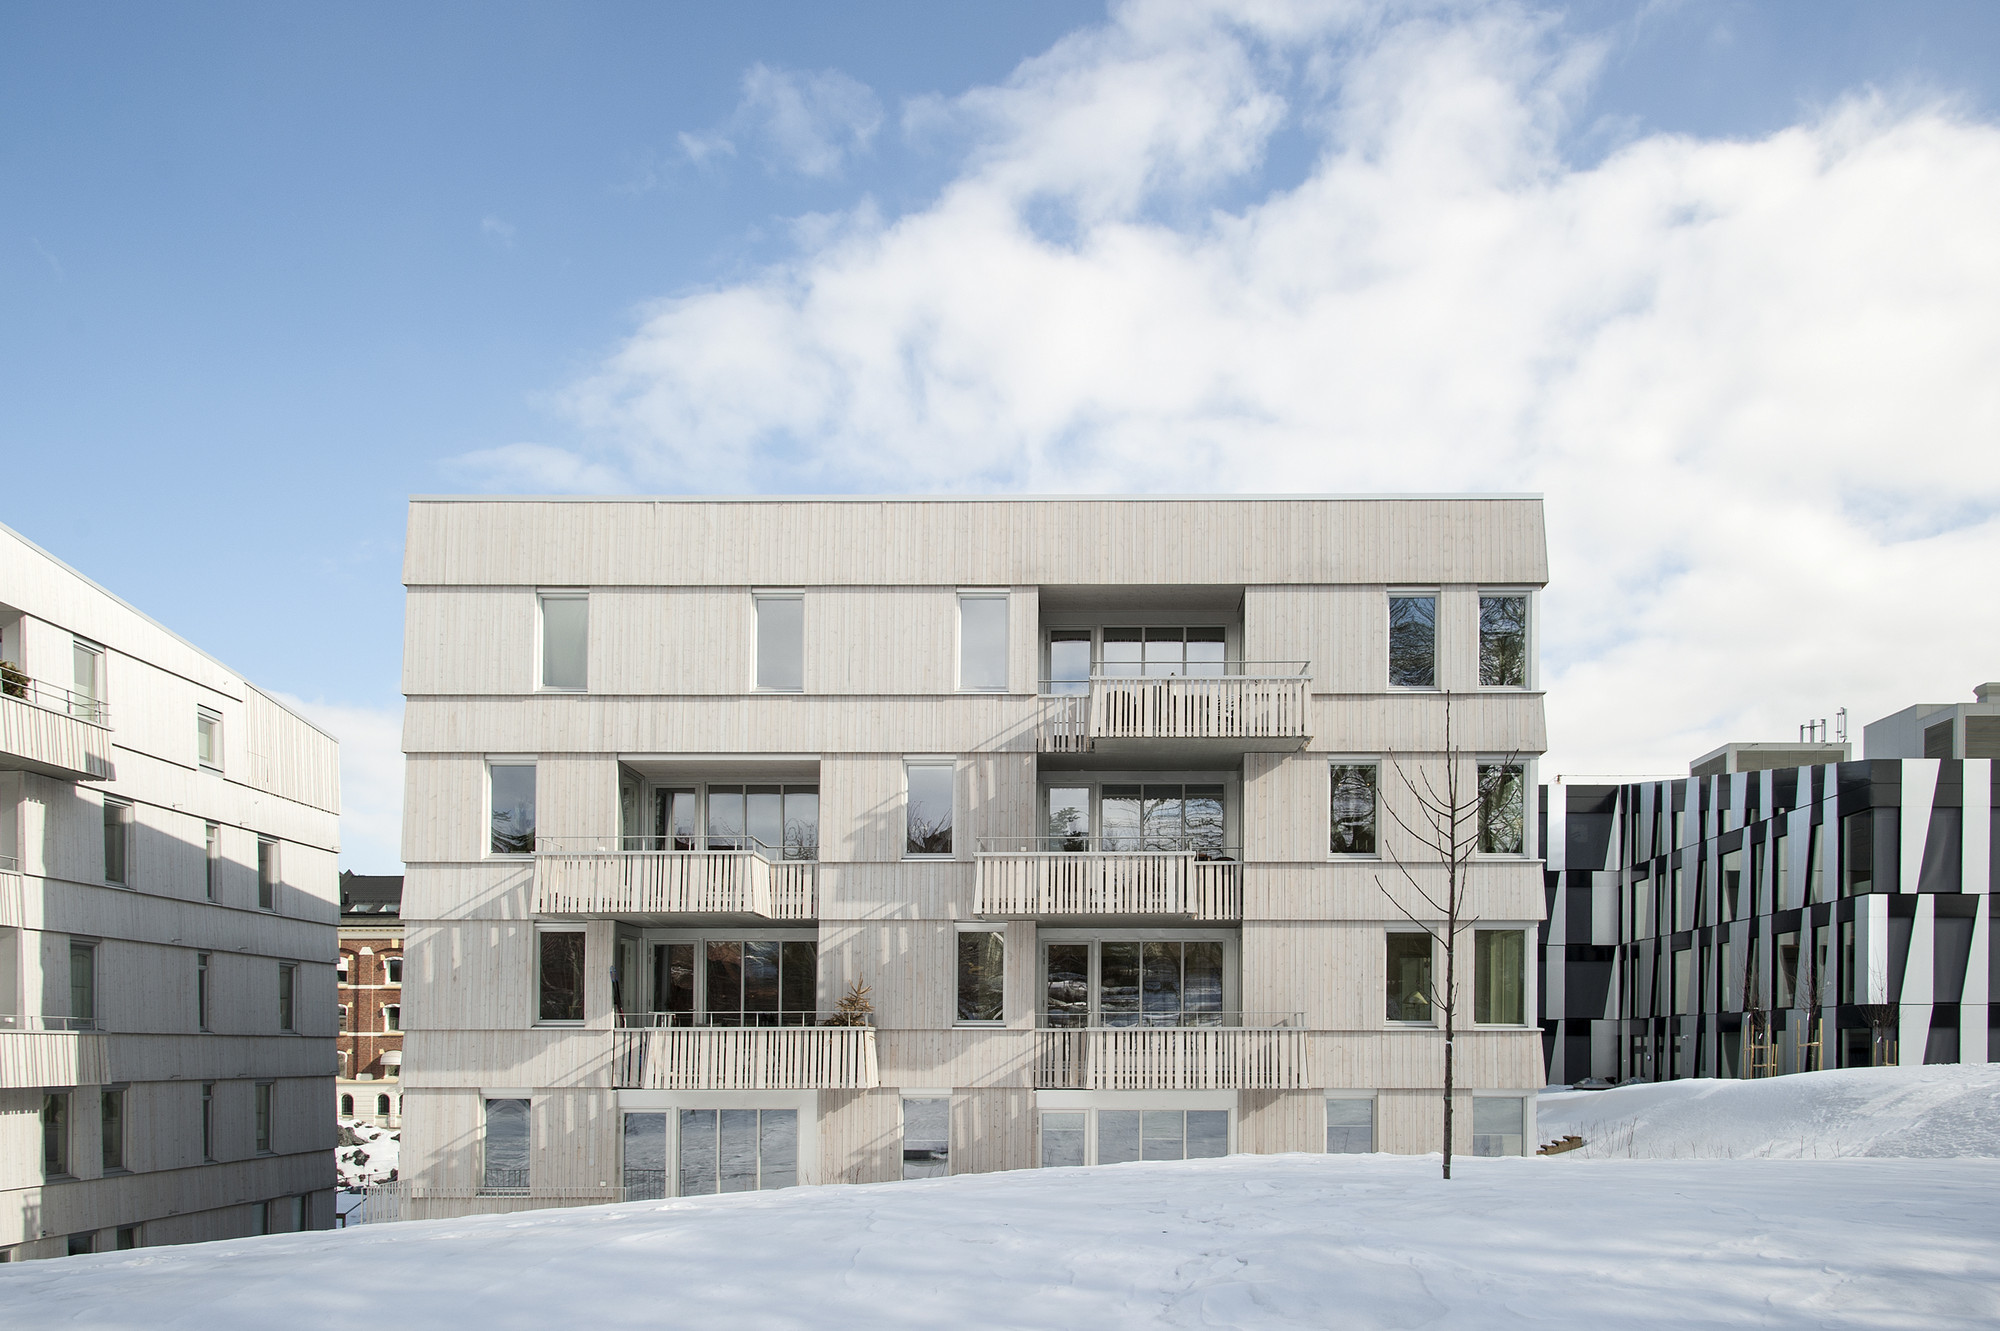 Spikerverket Housing / April Arkitekter, © Jiri Havran